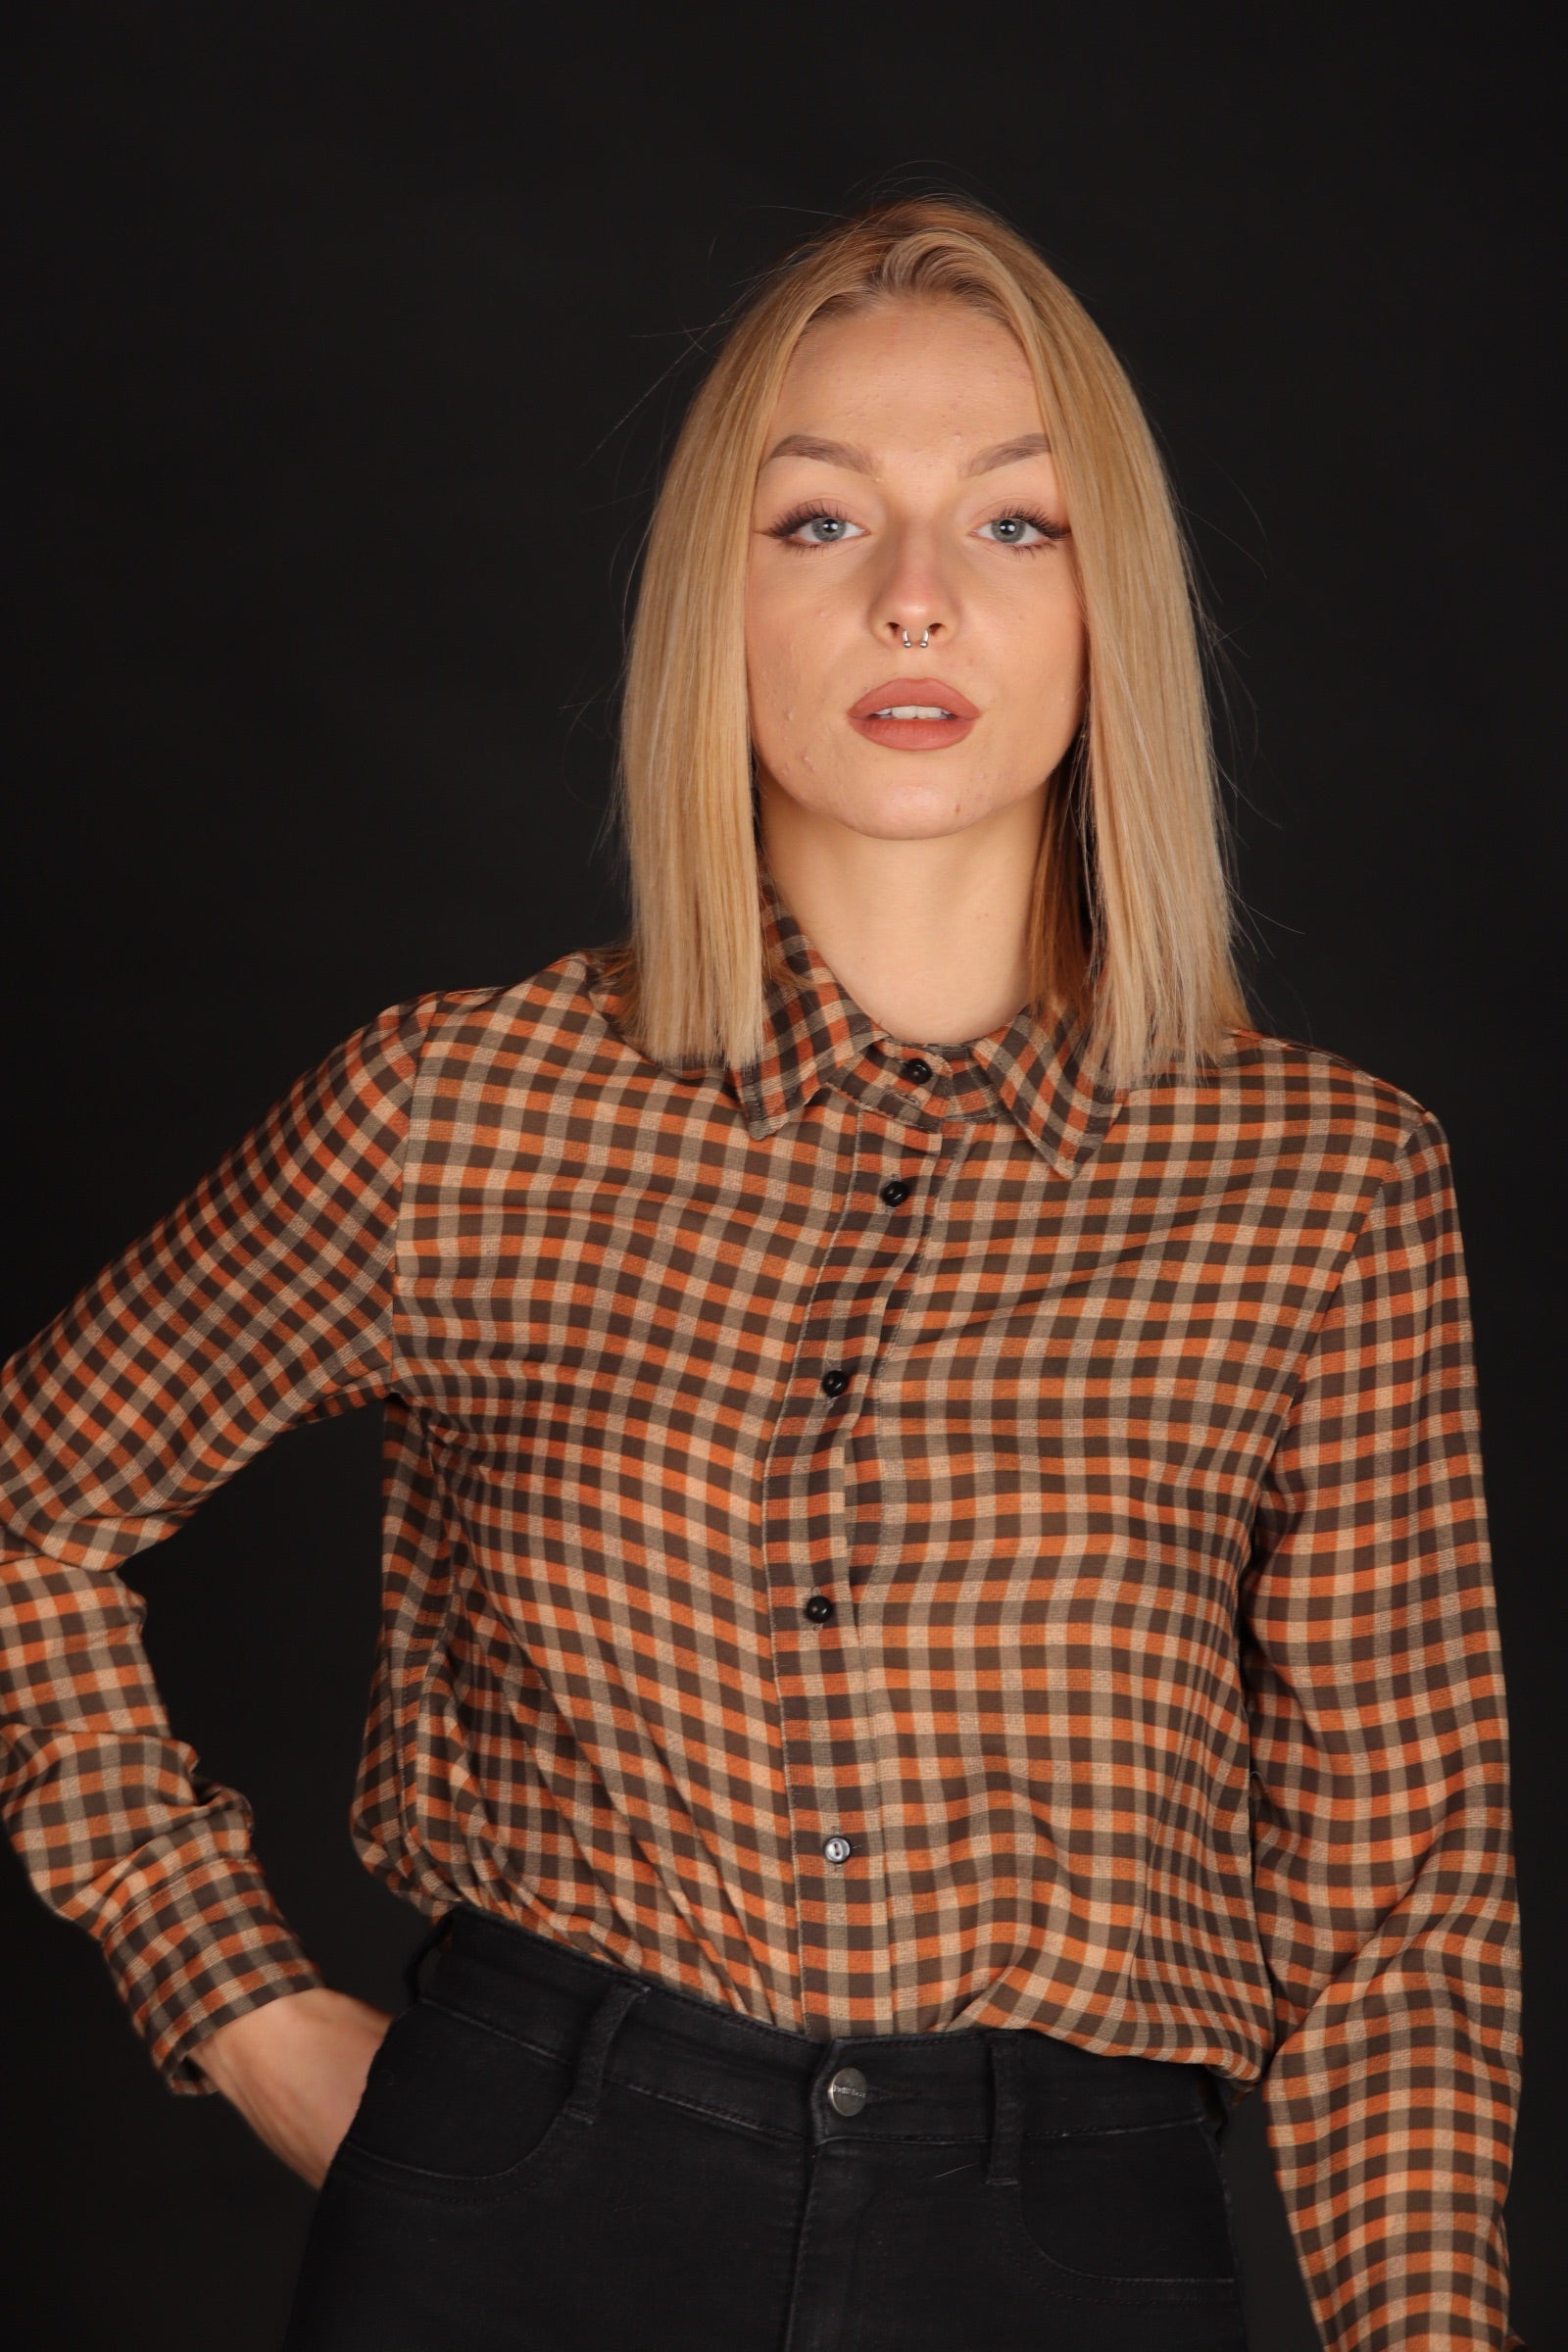 Nora Barth Factory Group - Aspesi Nora Barth Camicia Quadri Art. 17339 142 50